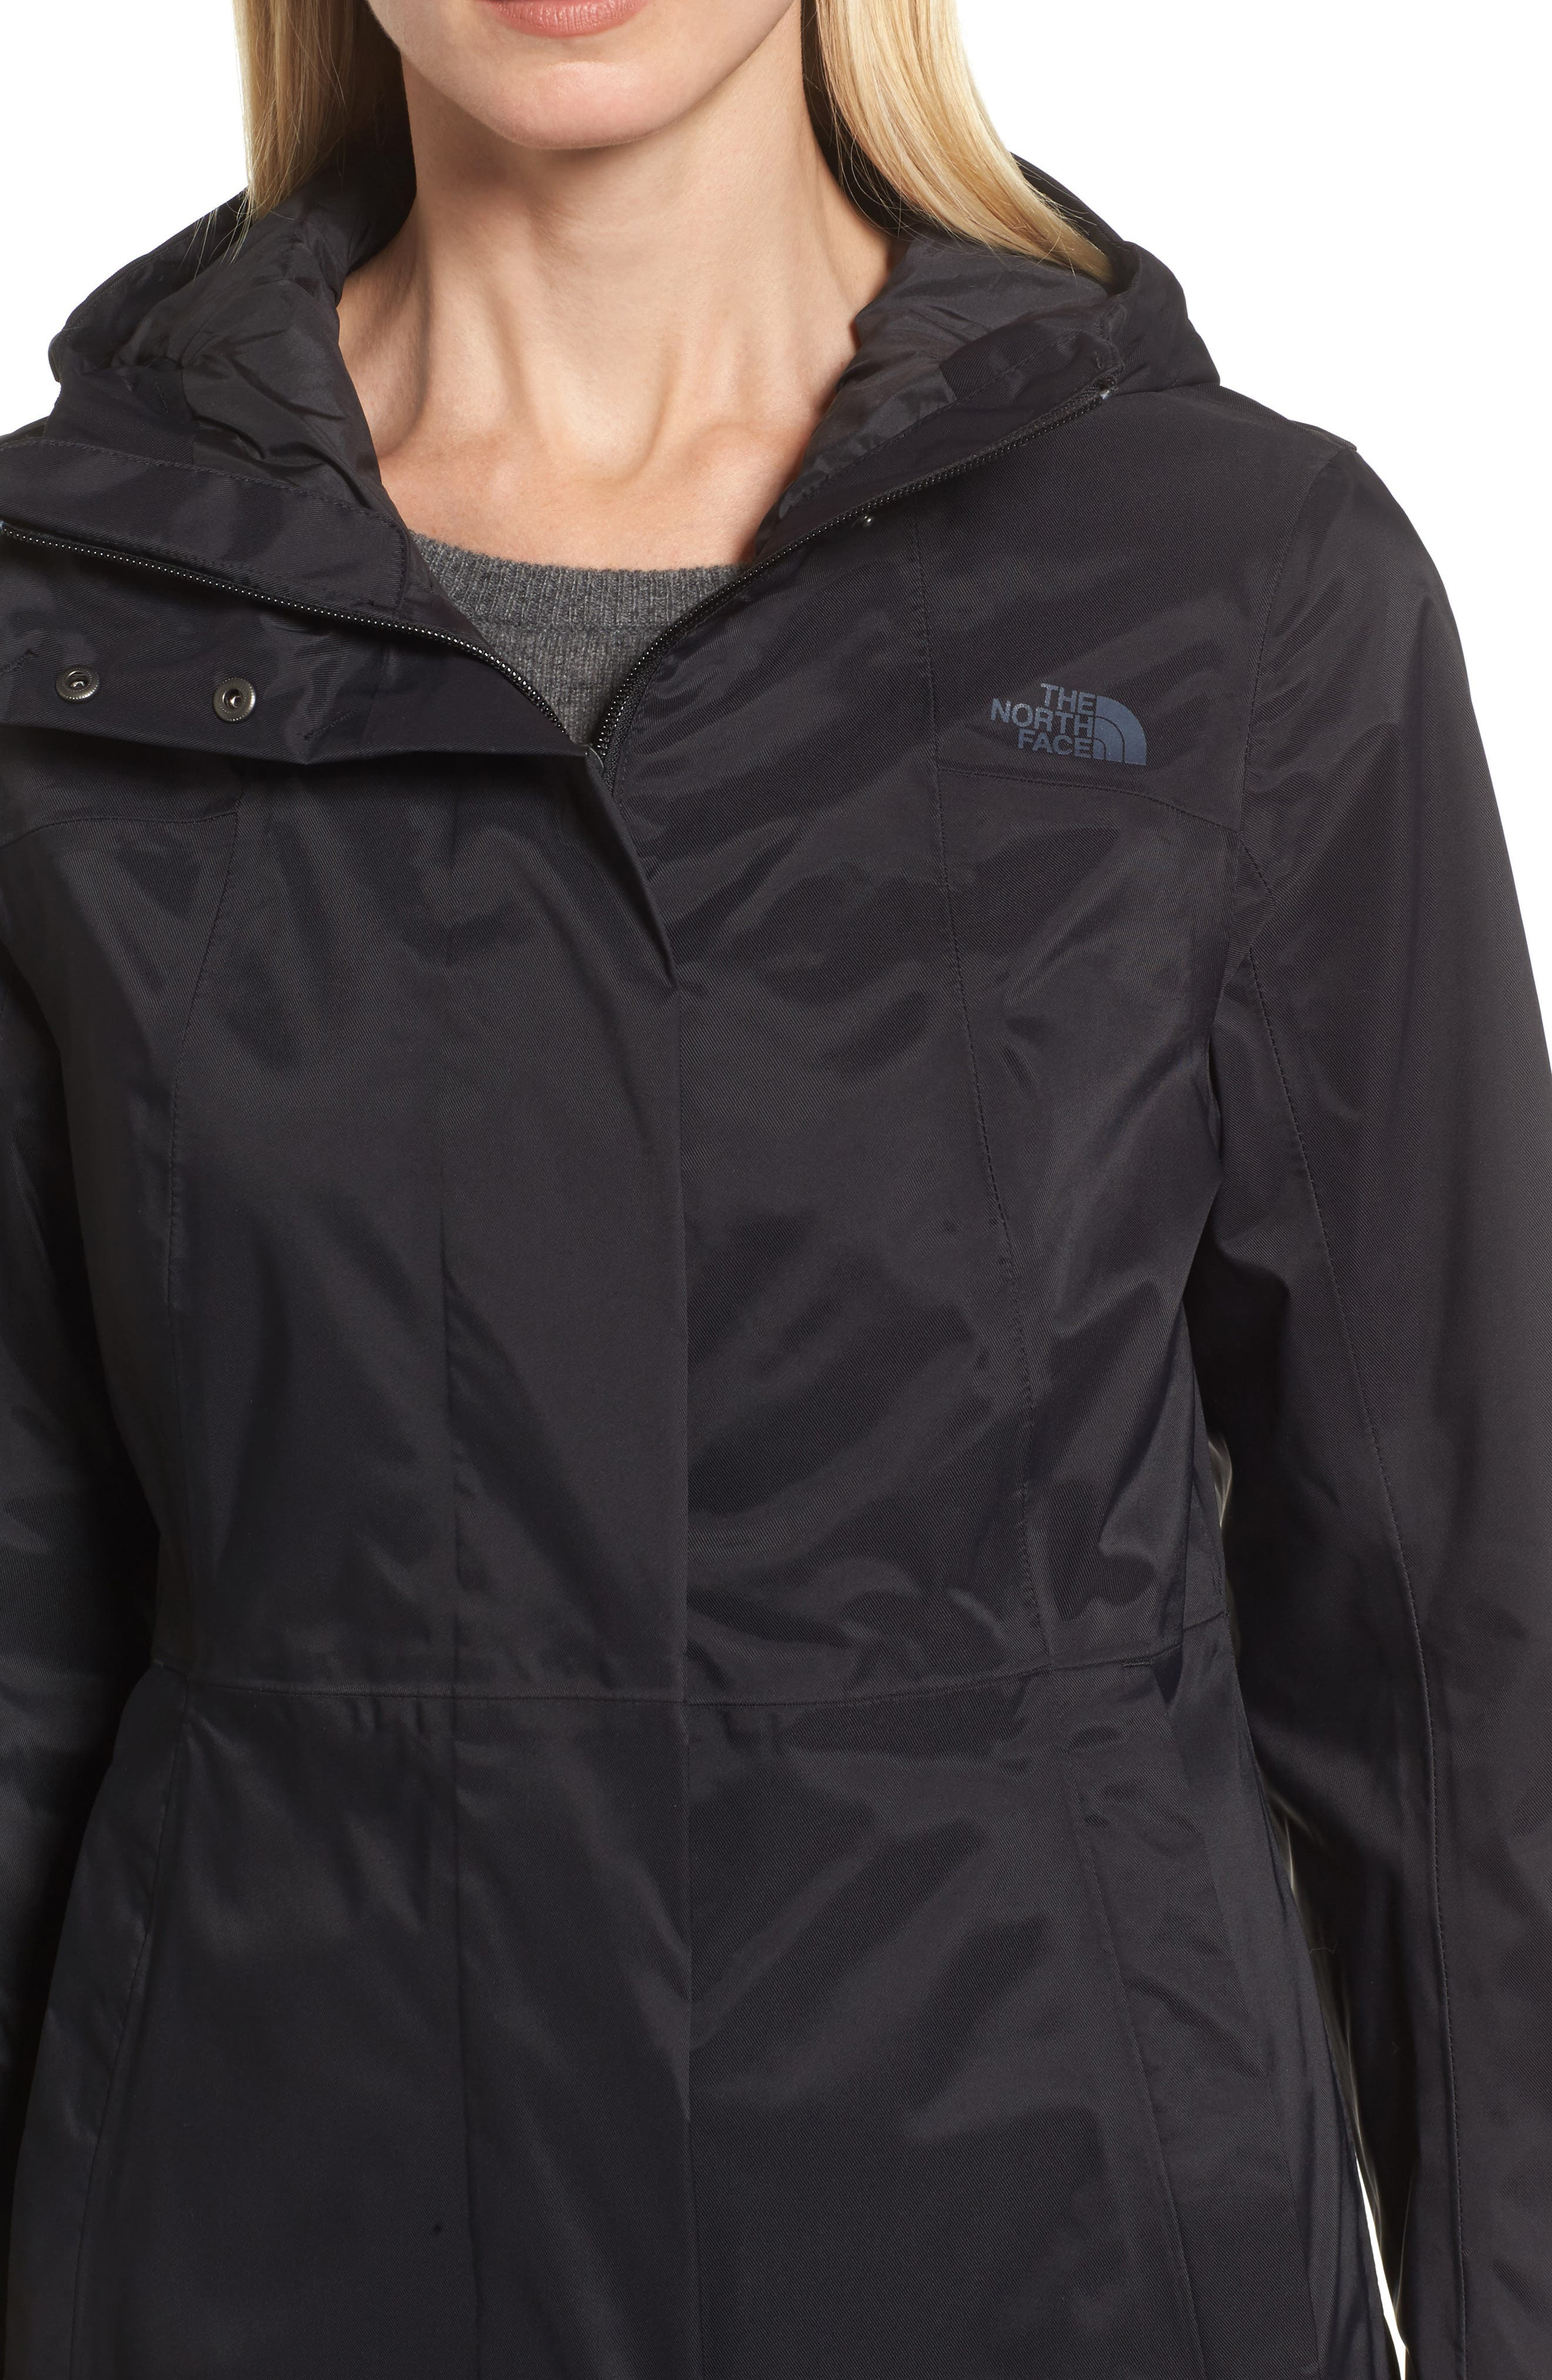 THE NORTH FACE, City Midi Trench Coat, Alternate thumbnail 5, color, 001